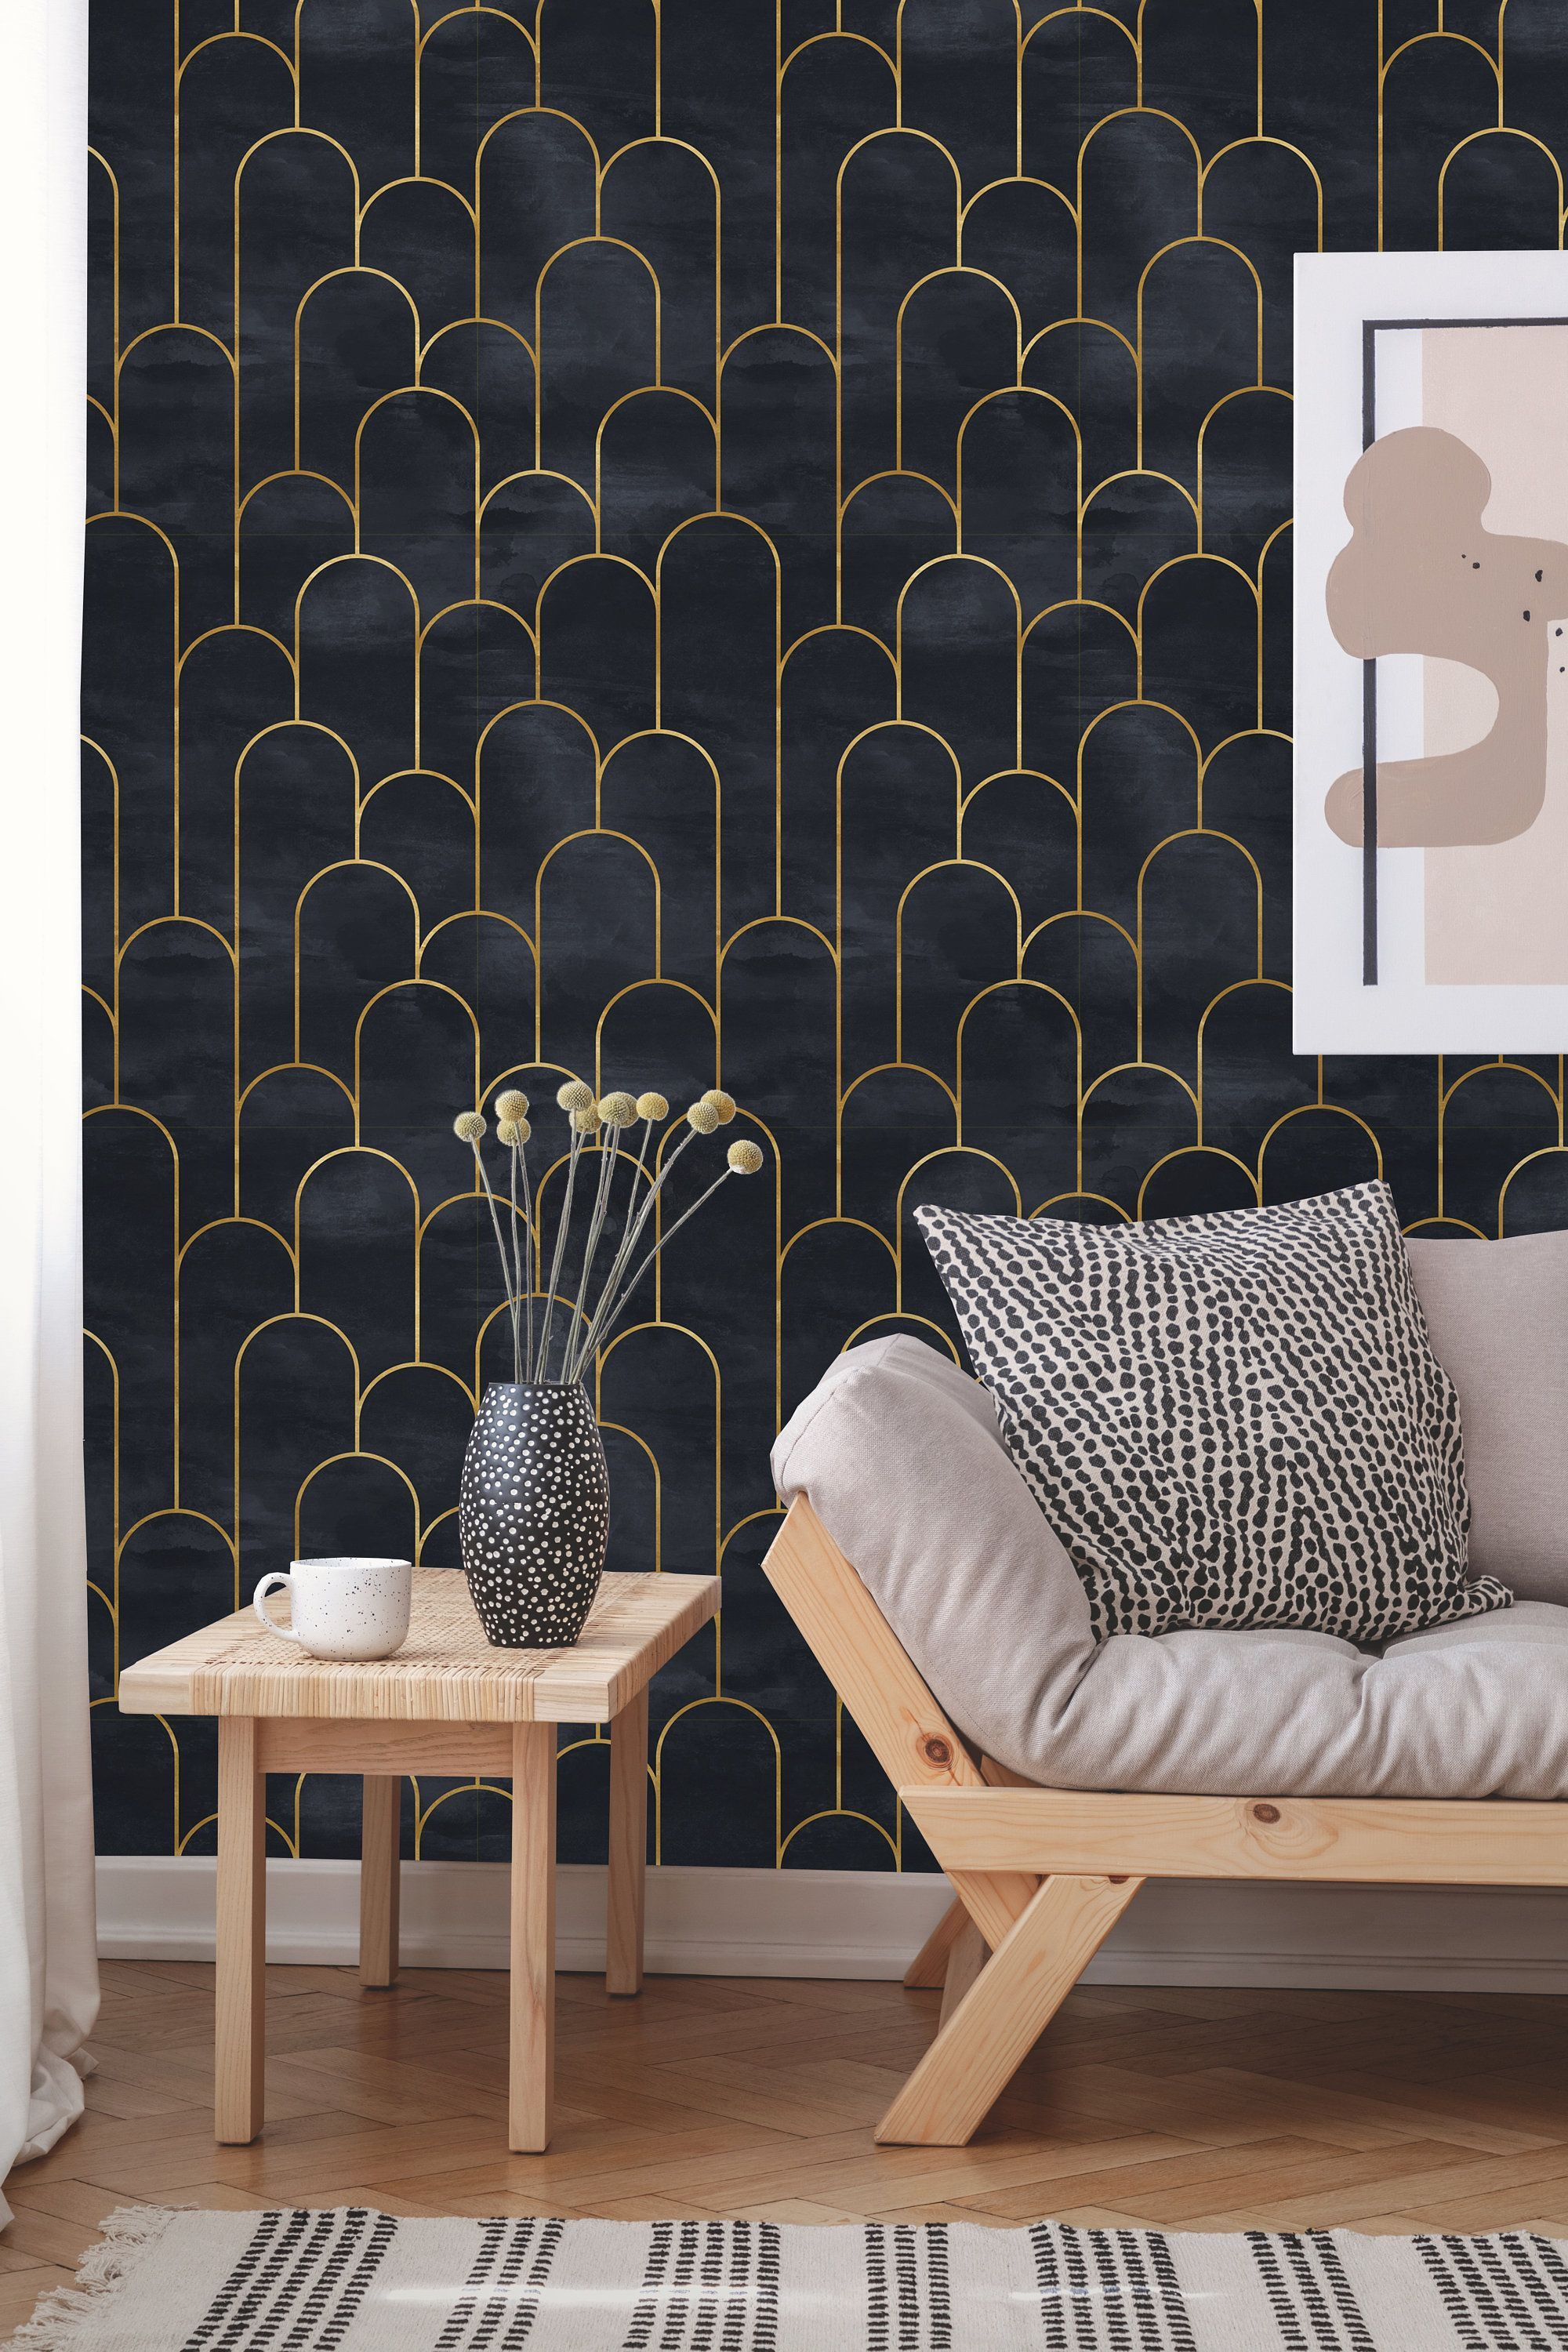 Removable Wallpaper Peel And Stick Geometric Wallpaper Self Adhesive Art Deco Wallpaper Vintage Wall Interior Deco Art Deco Wallpaper Geometric Wallpaper